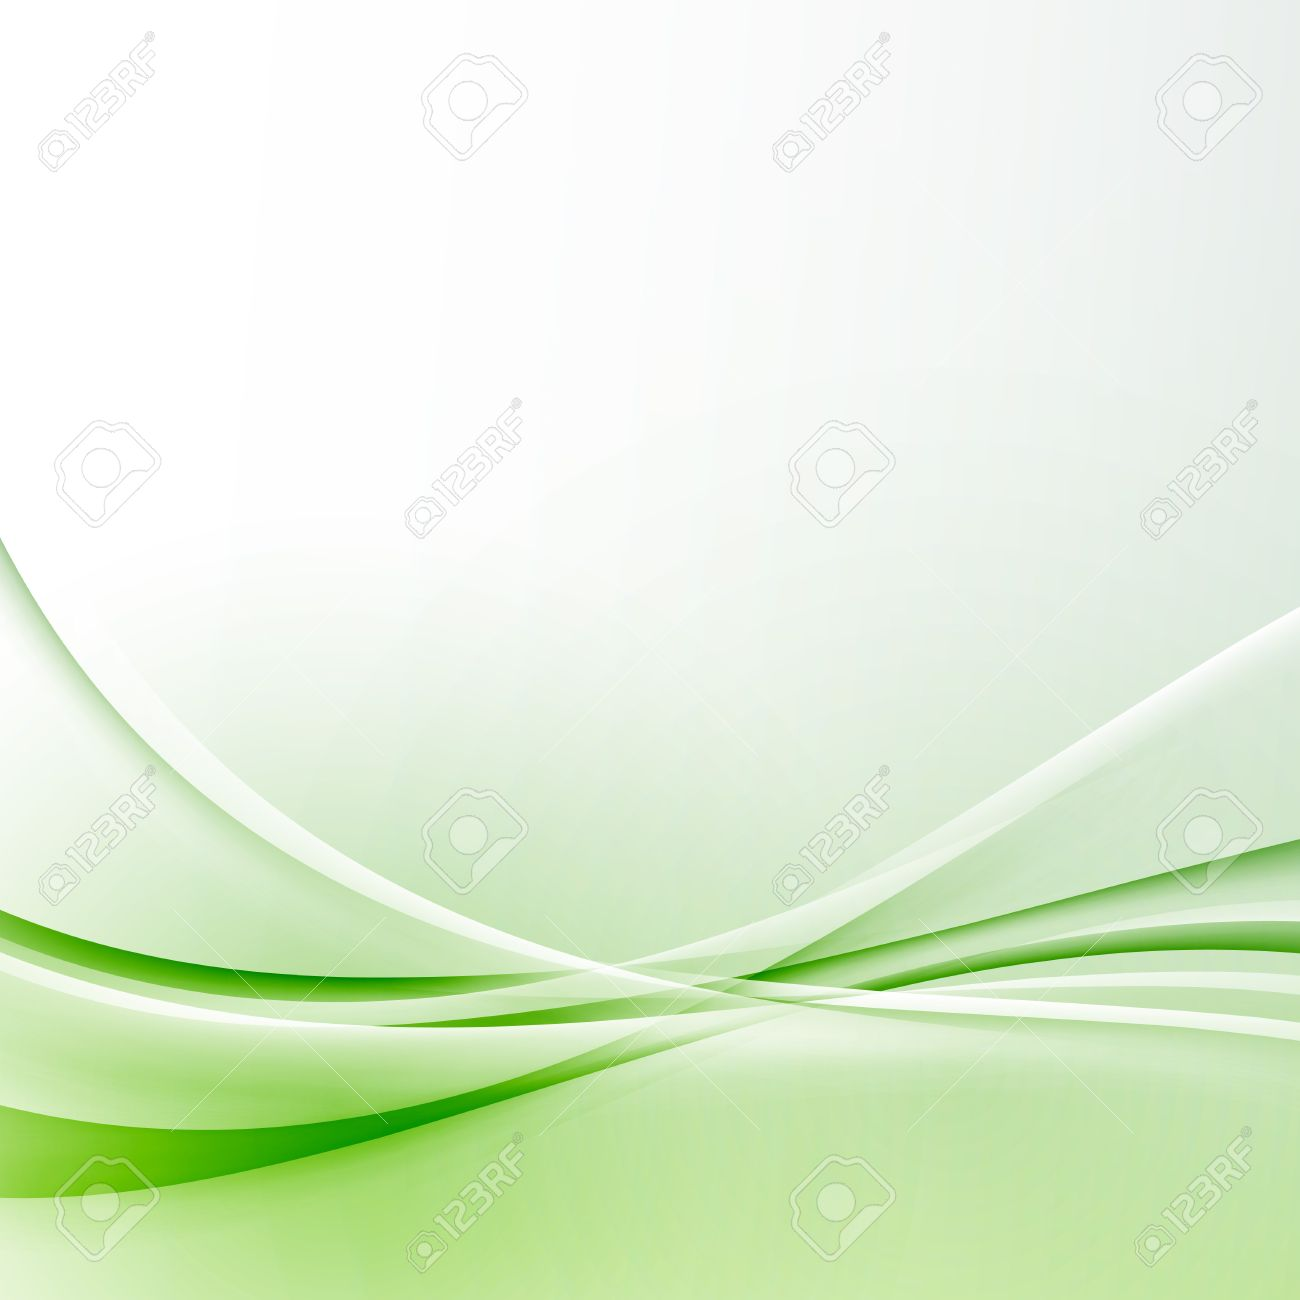 Green Wave Border Abstract Modern Certificate Background Border ...